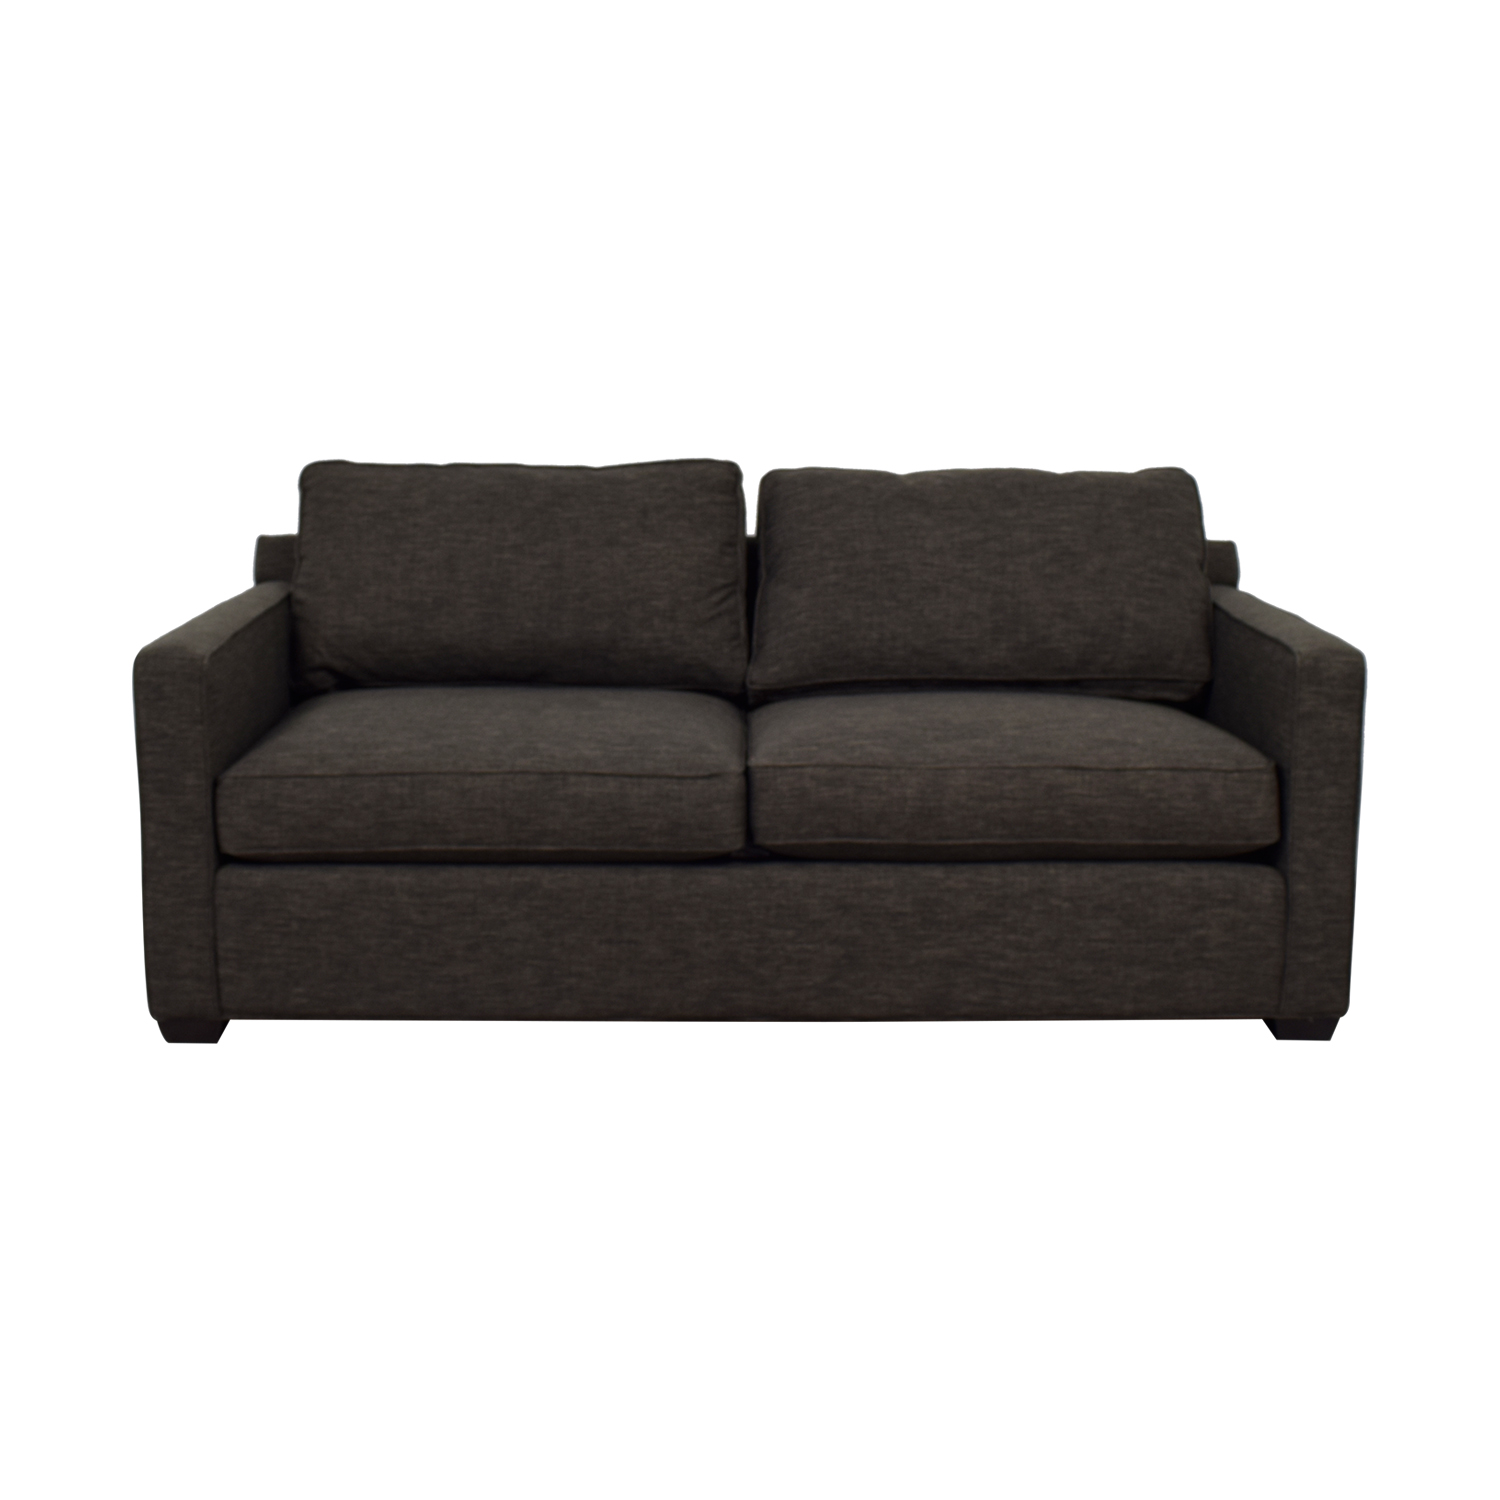 Crate & Barrel Crate & Barrel Davis Charcoal Two-Cushion Sofa coupon